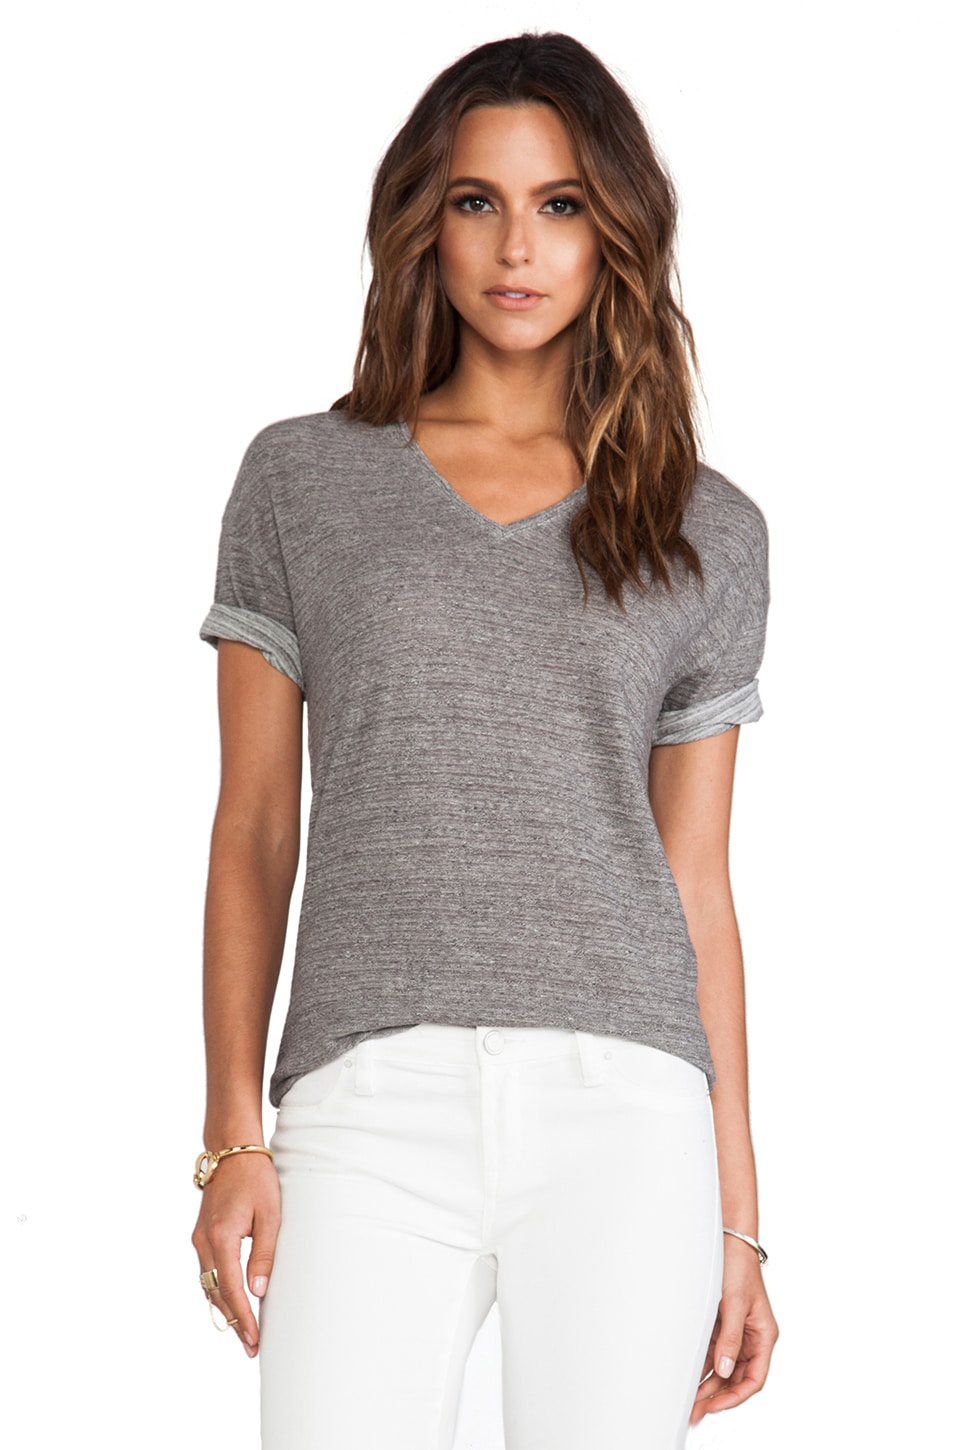 Bella Luxx Marled V-Neck Tee in Charcoal Grey